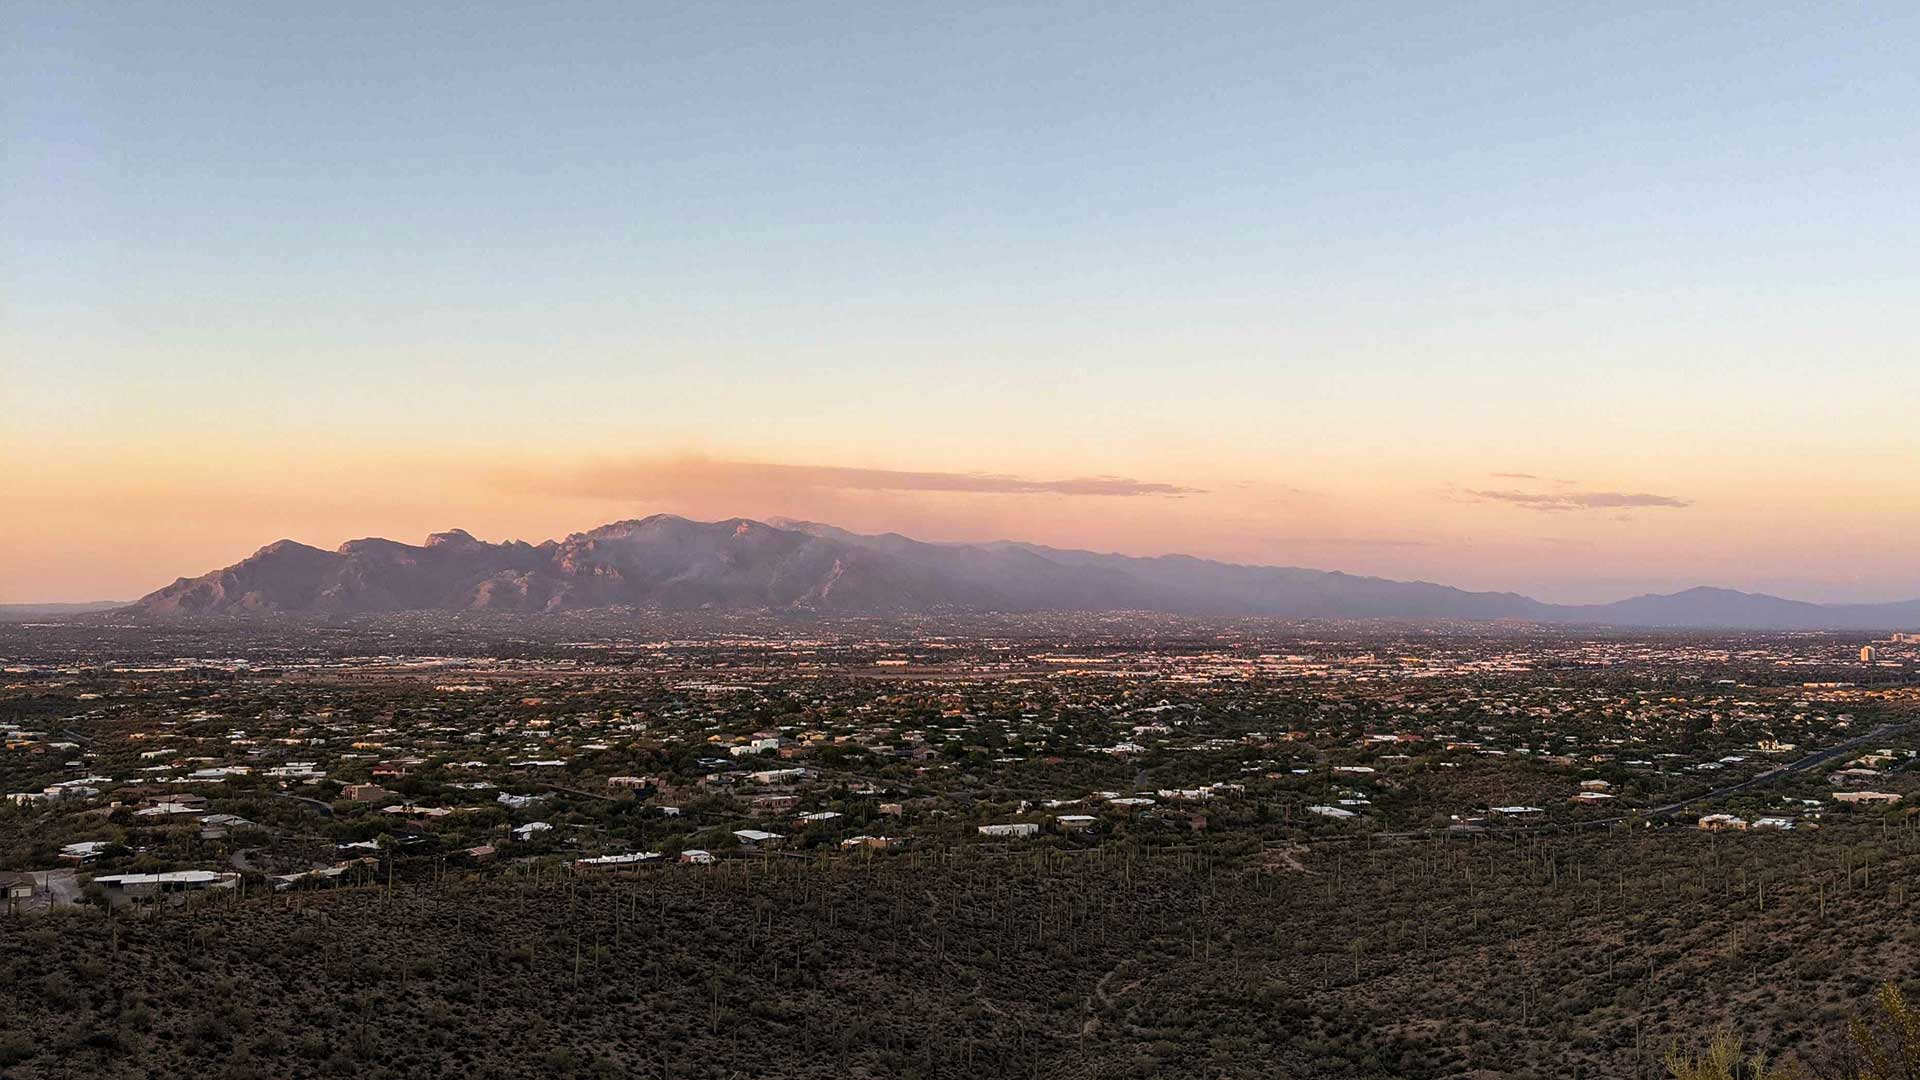 Smoke drifts from the Bighorn Fire in the Santa Catalina mountains, June 11, 2020.